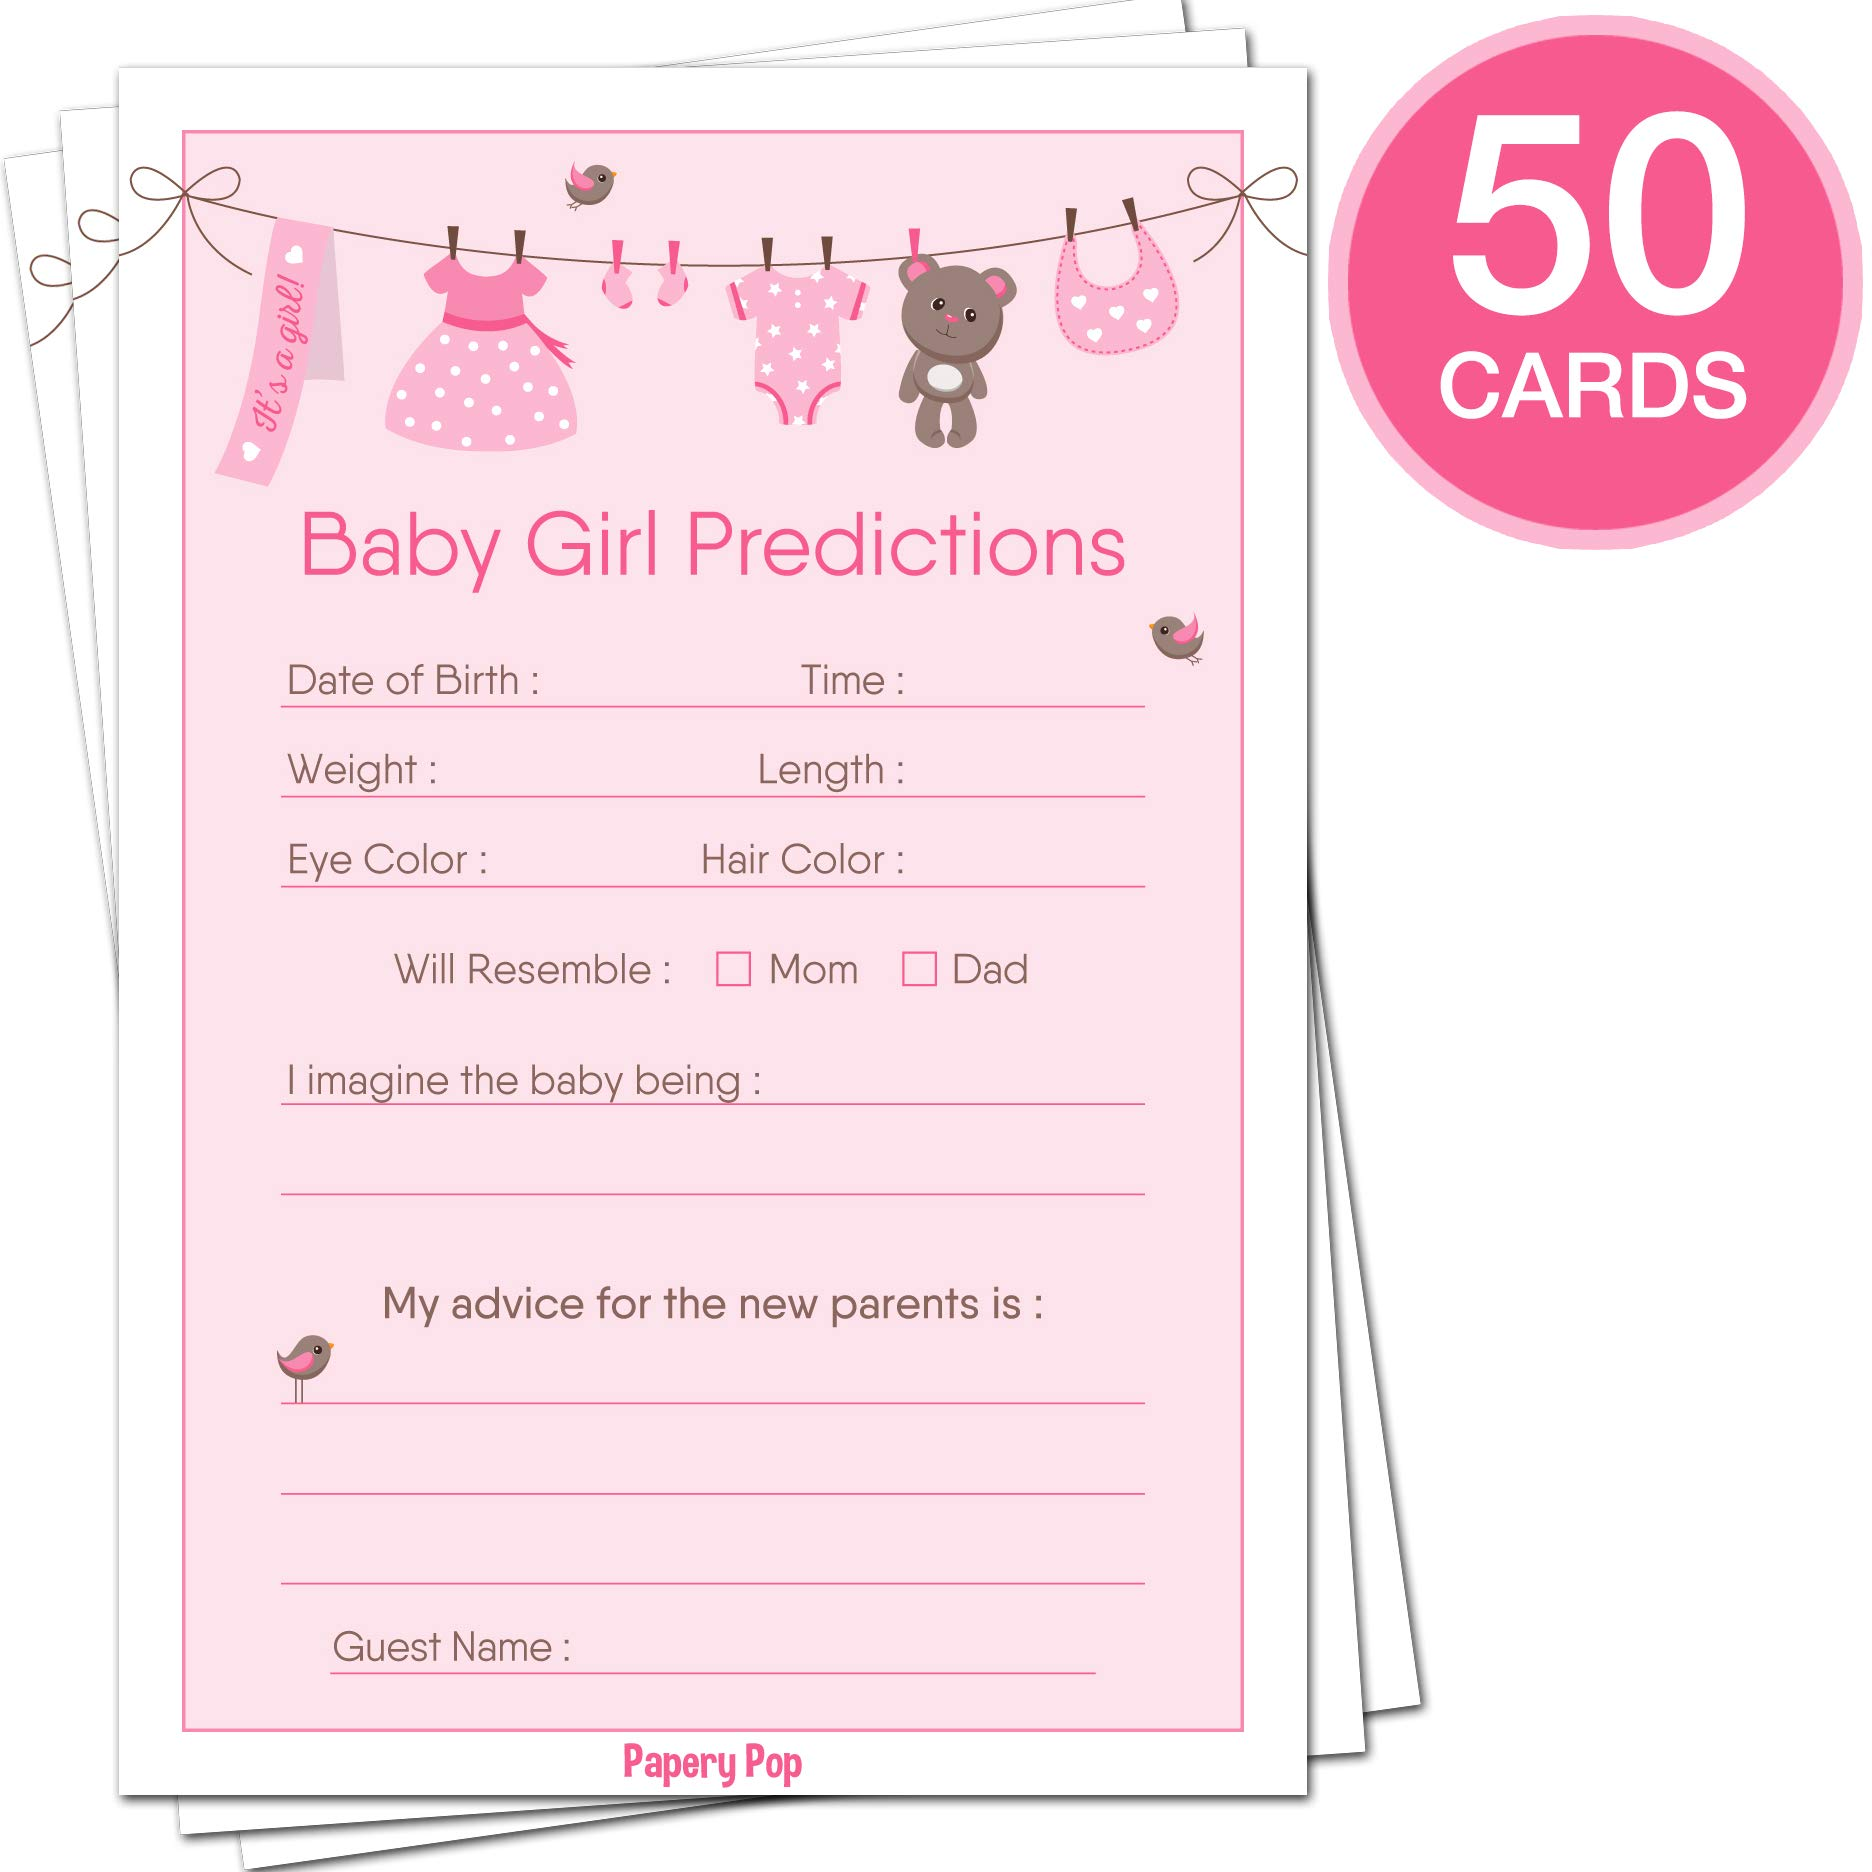 Baby Shower Games for Girls - Set of 5 Activities - (50 Cards Each, 250 Total) - Baby Shower Supplies by Papery Pop (Image #5)